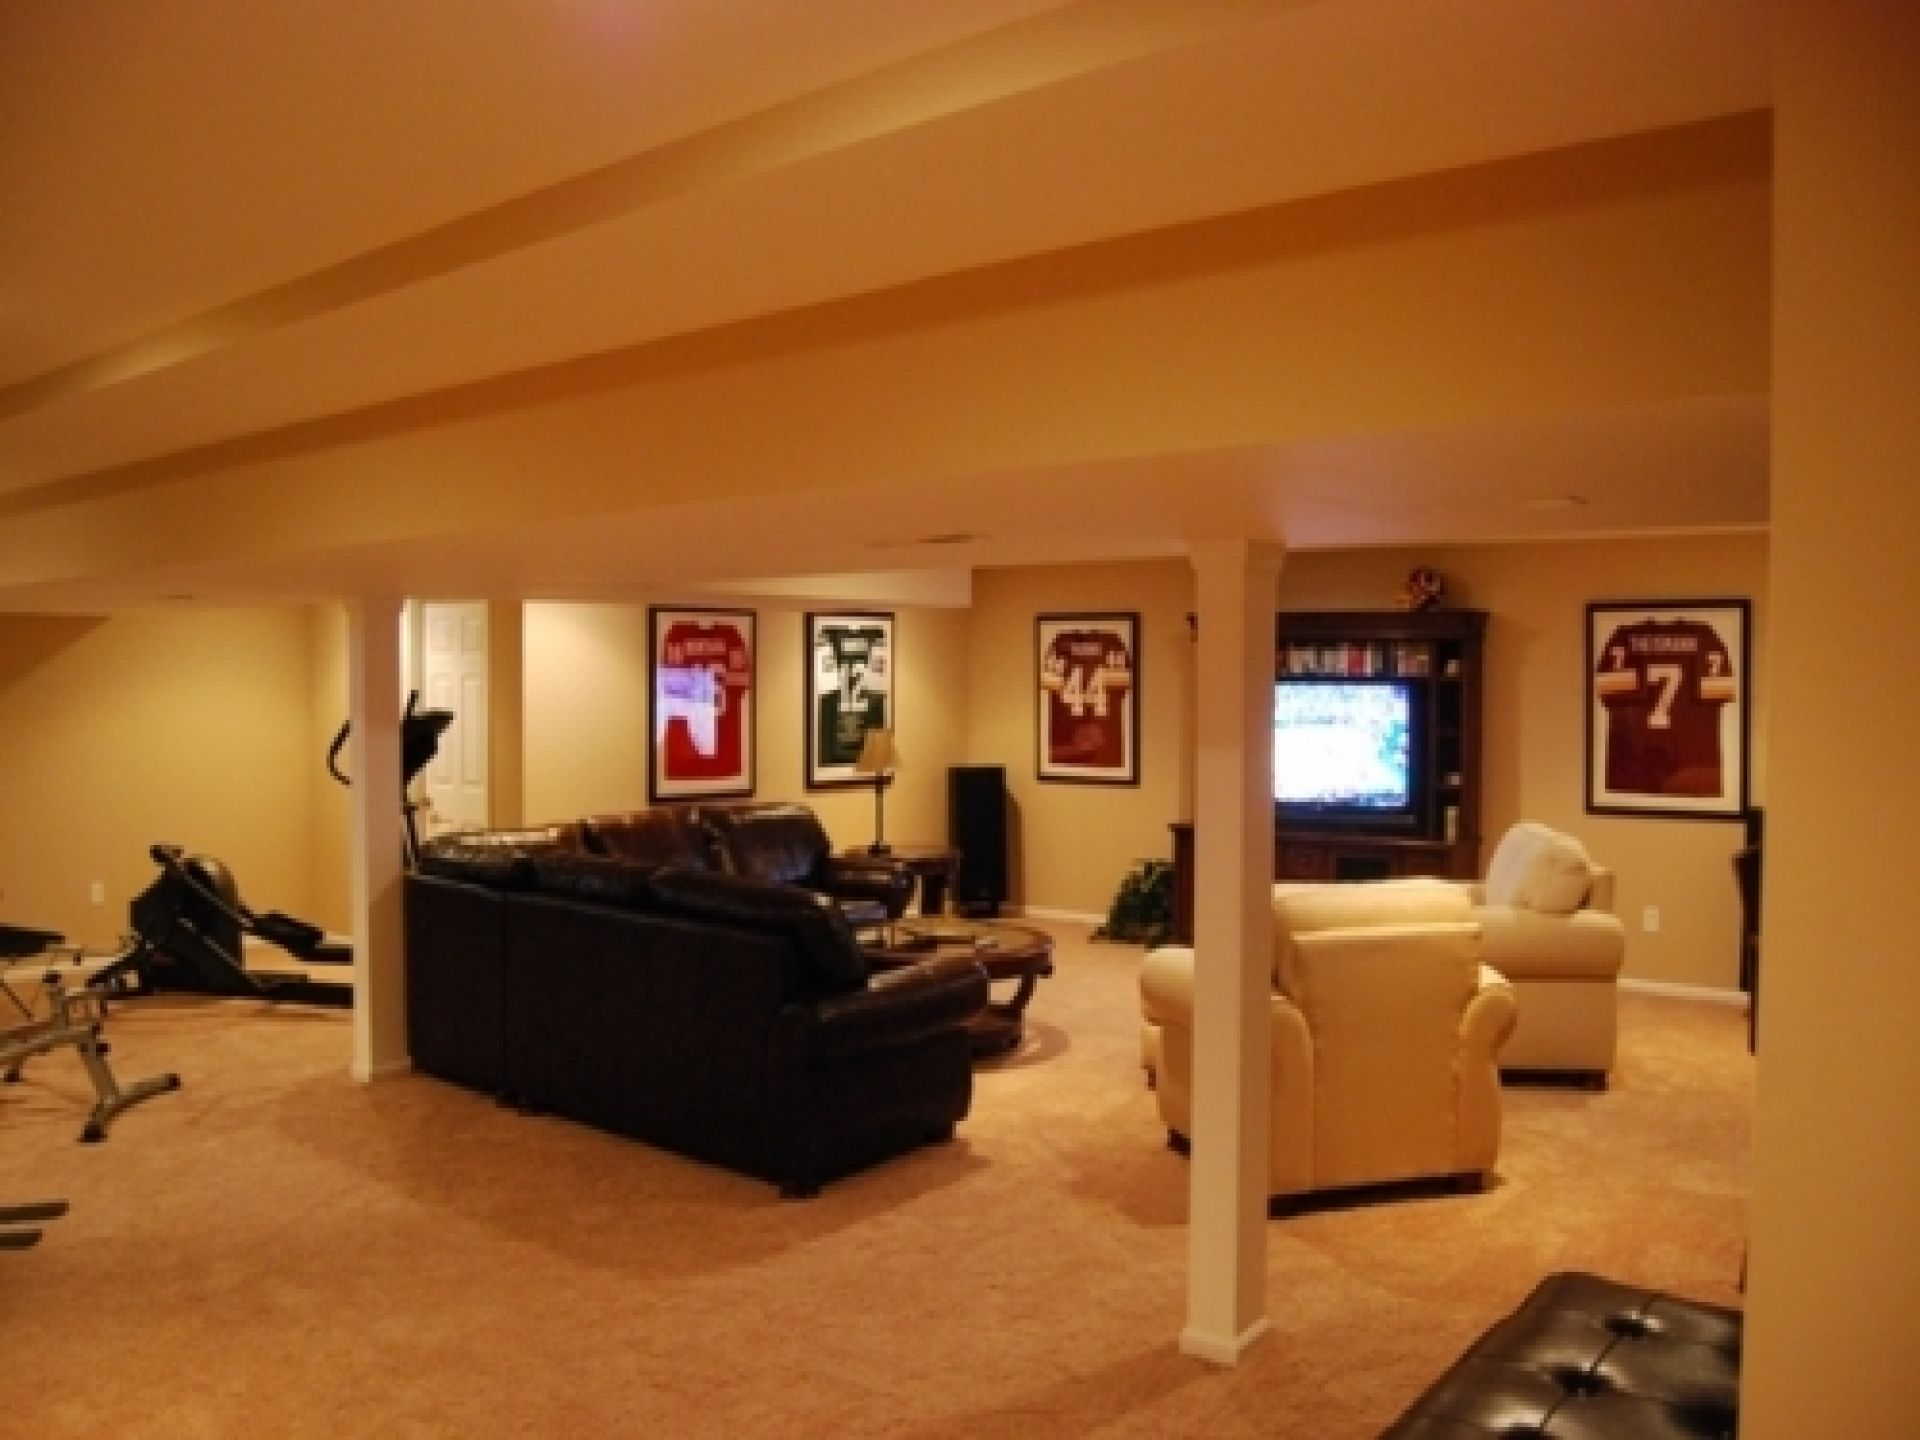 Basement Ideas On A Budget Smalltowndjscom Morgan Home